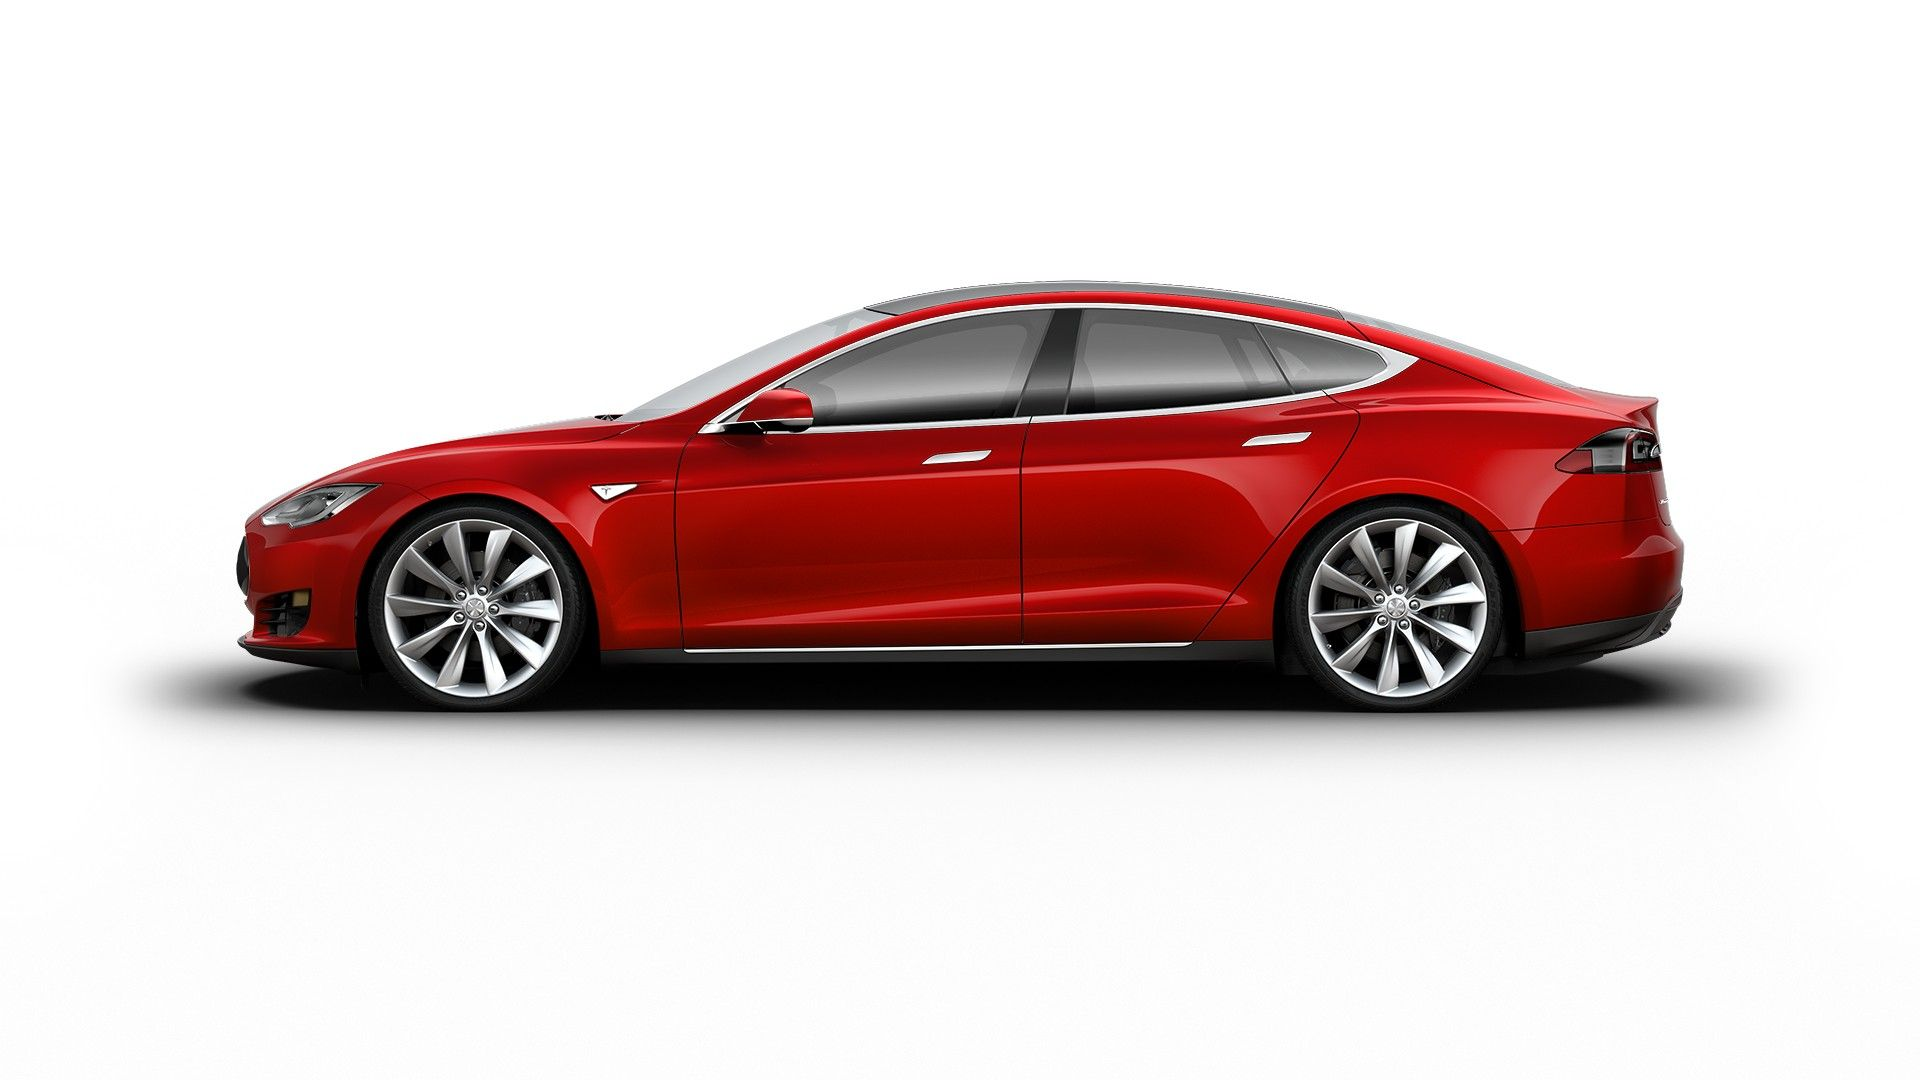 PreOwned Model S Tesla Motors Used electric cars, Car